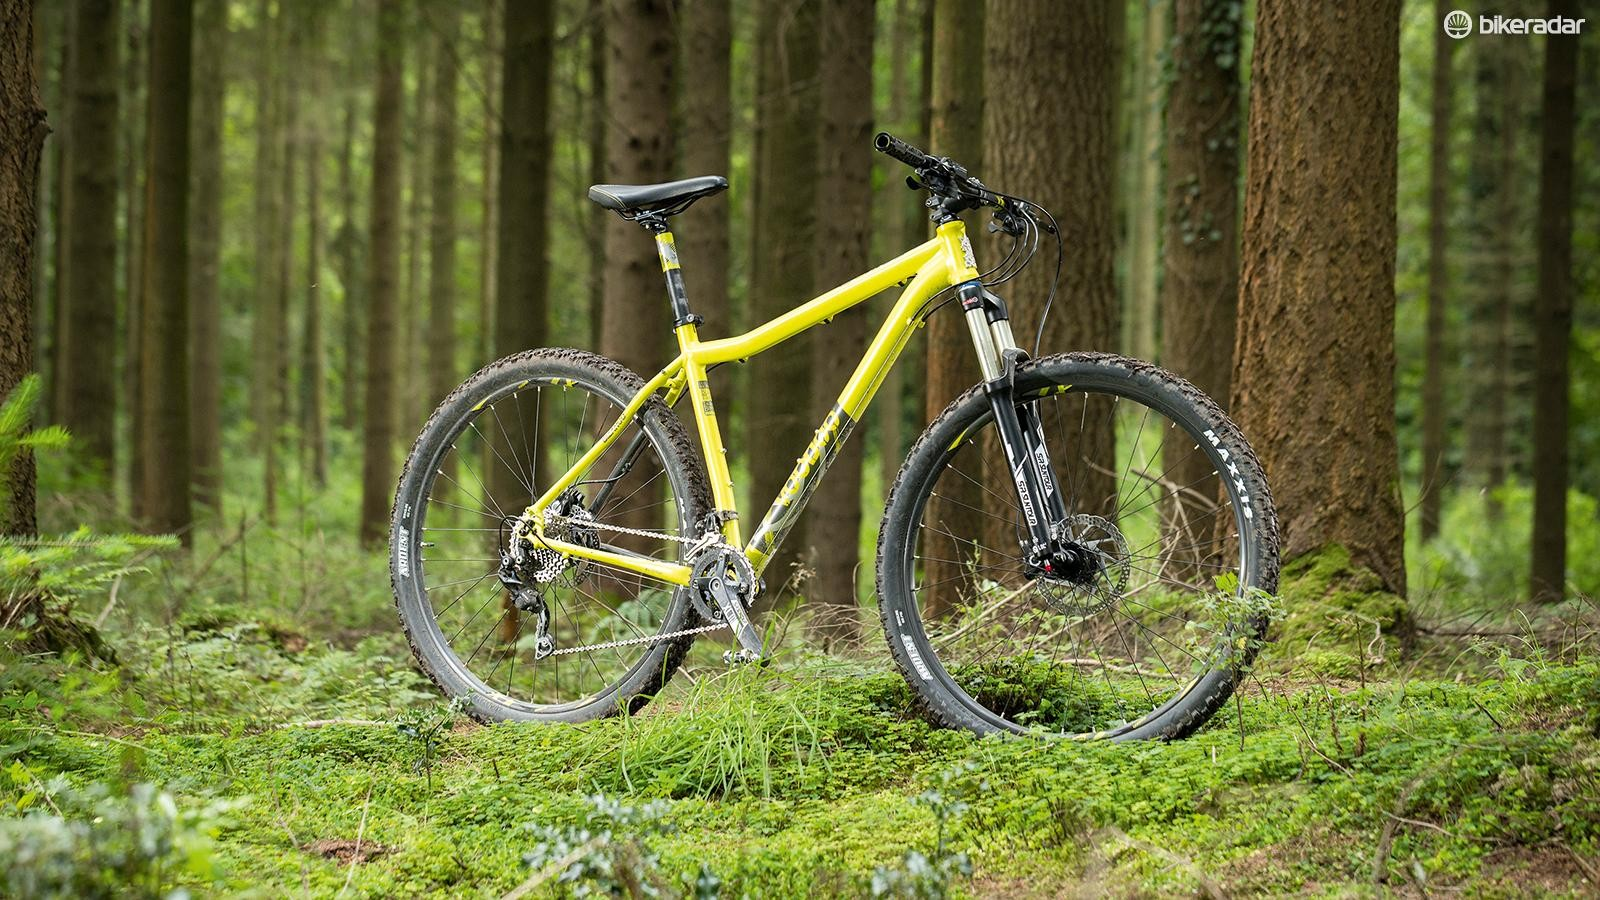 The Voodoo Bizango knocked spots off its peers in our recent mega-test of budget mountain bikes